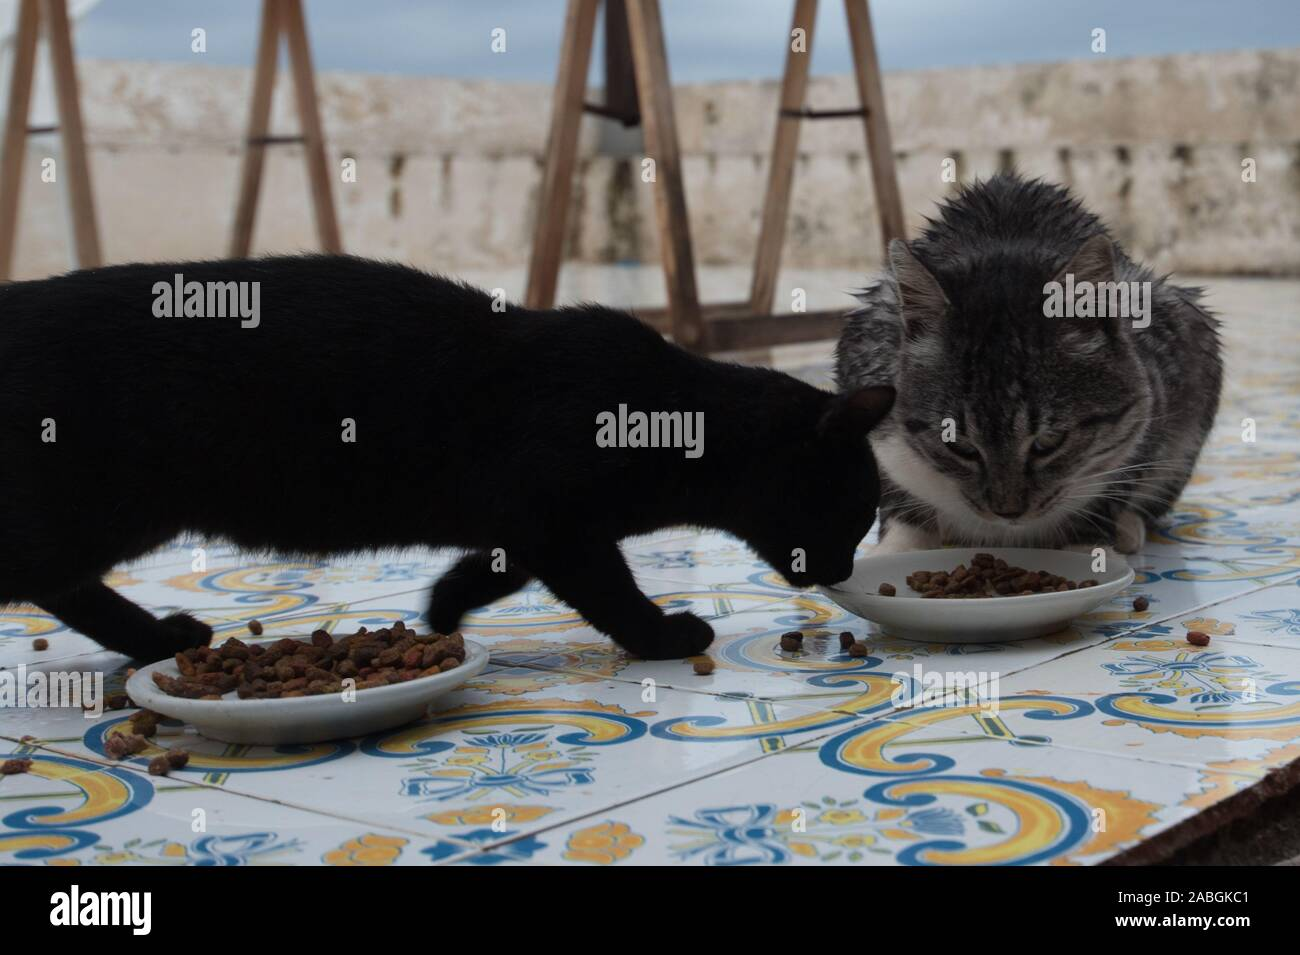 Two cats eating from same bowl Stock Photo